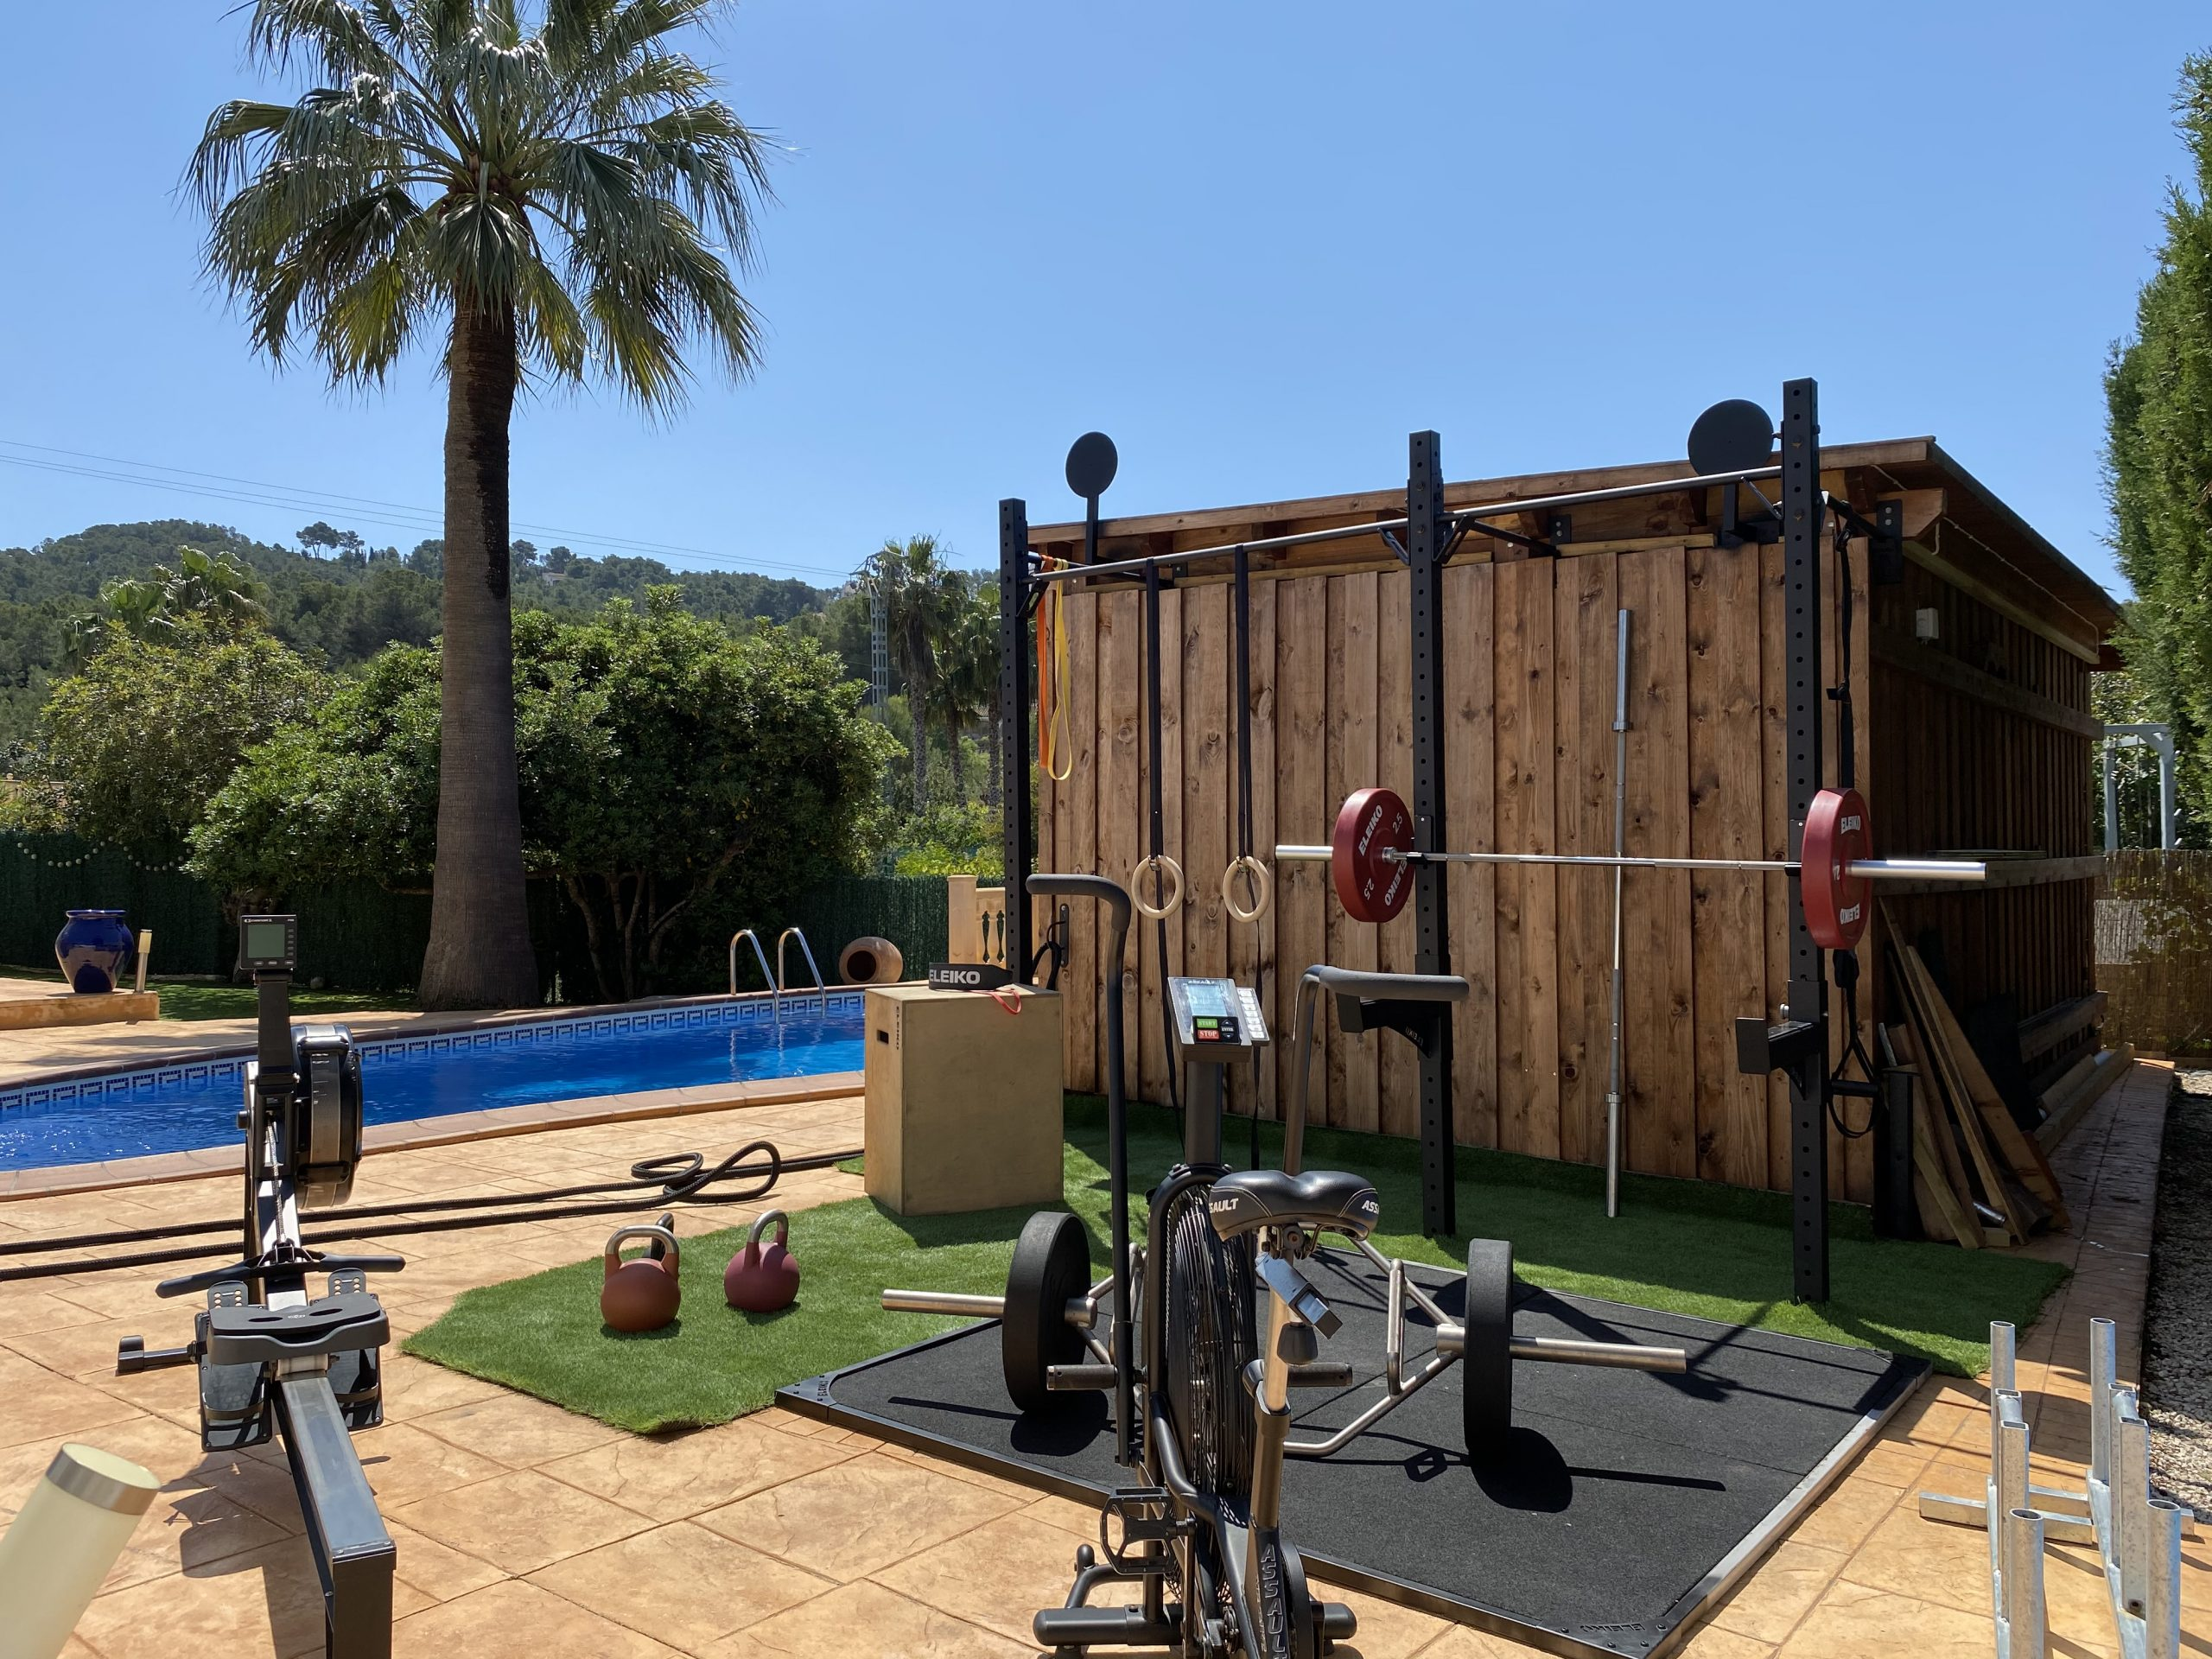 Outdoor gym area